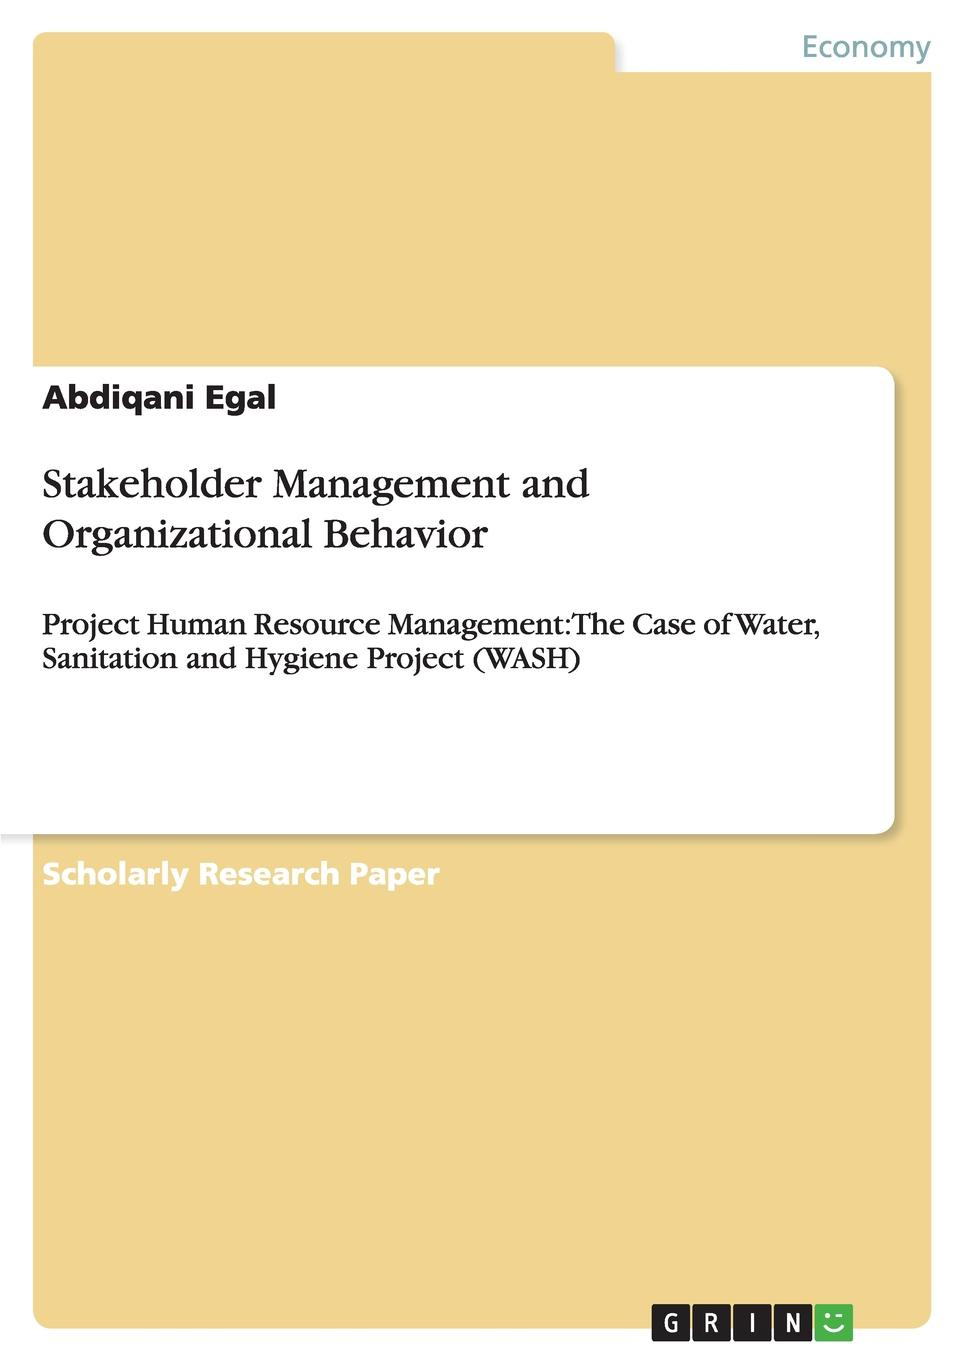 Abdiqani Egal Stakeholder Management and Organizational Behavior rae schneider the mysilenthalf project